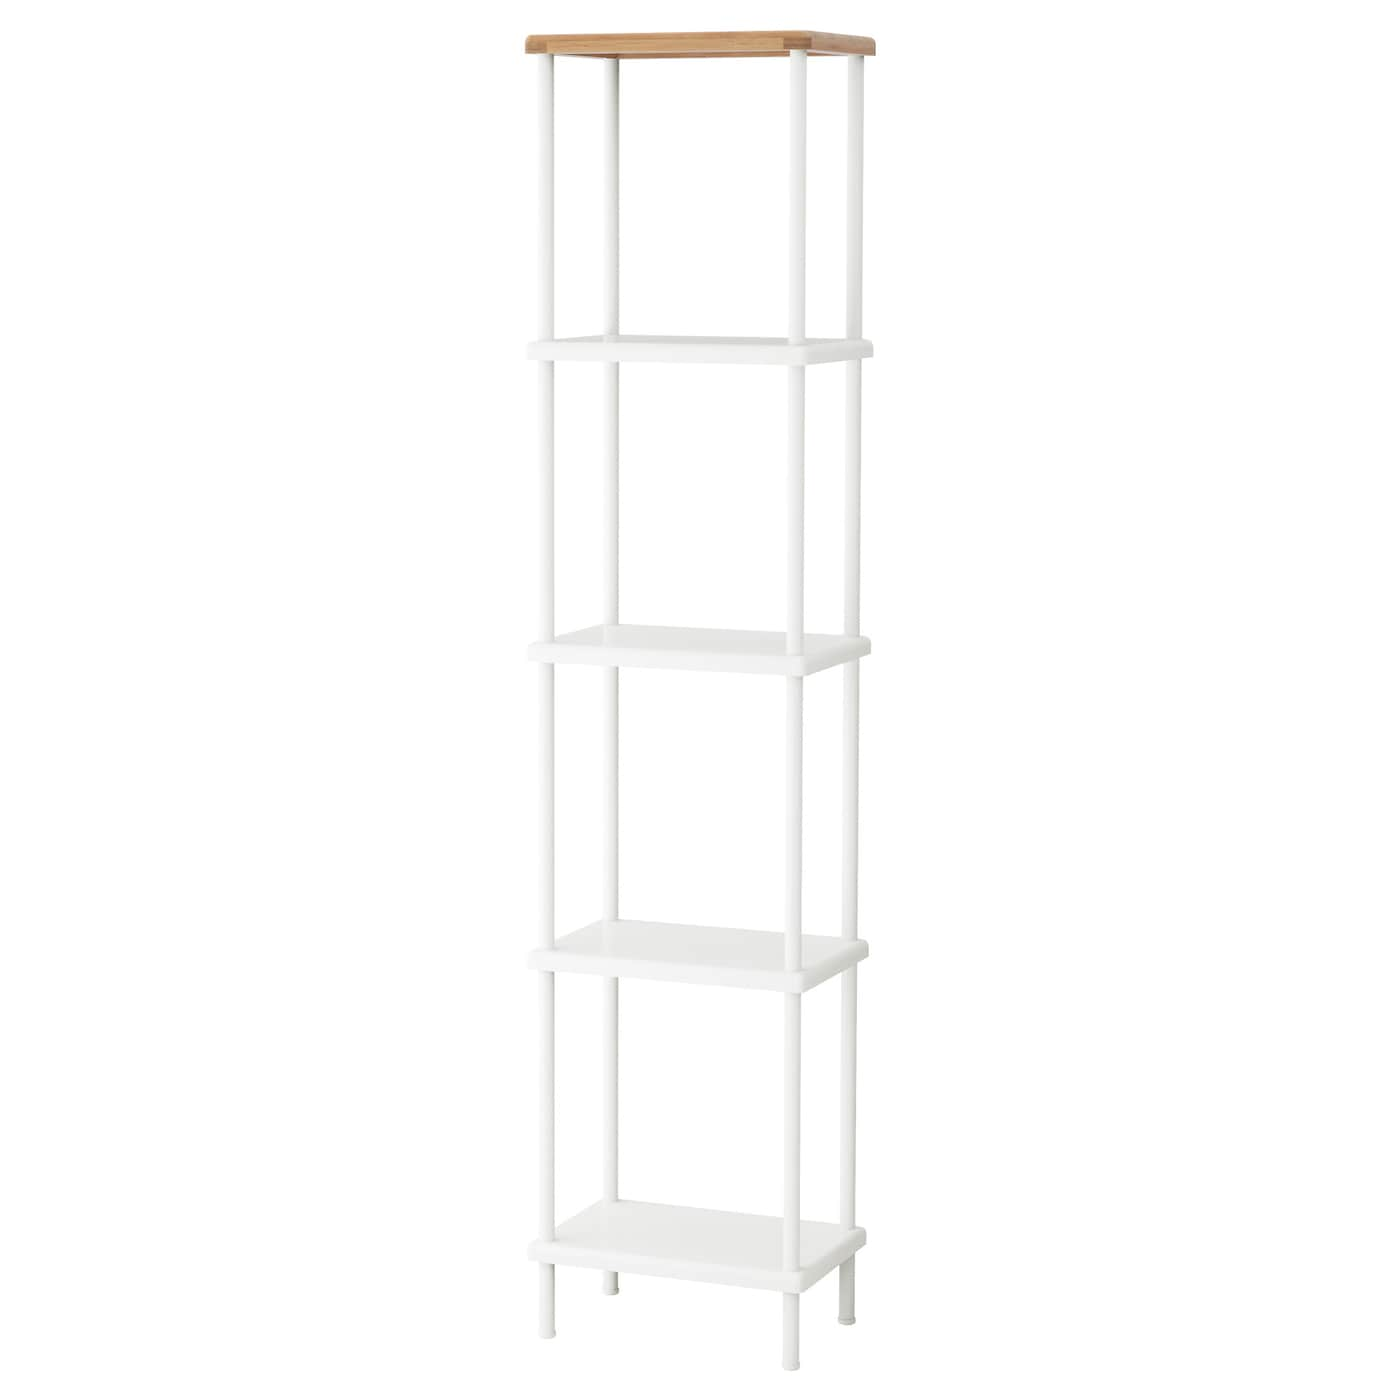 ikea dynan shelf unit perfect in a small bathroom - Bathroom Shelf Unit